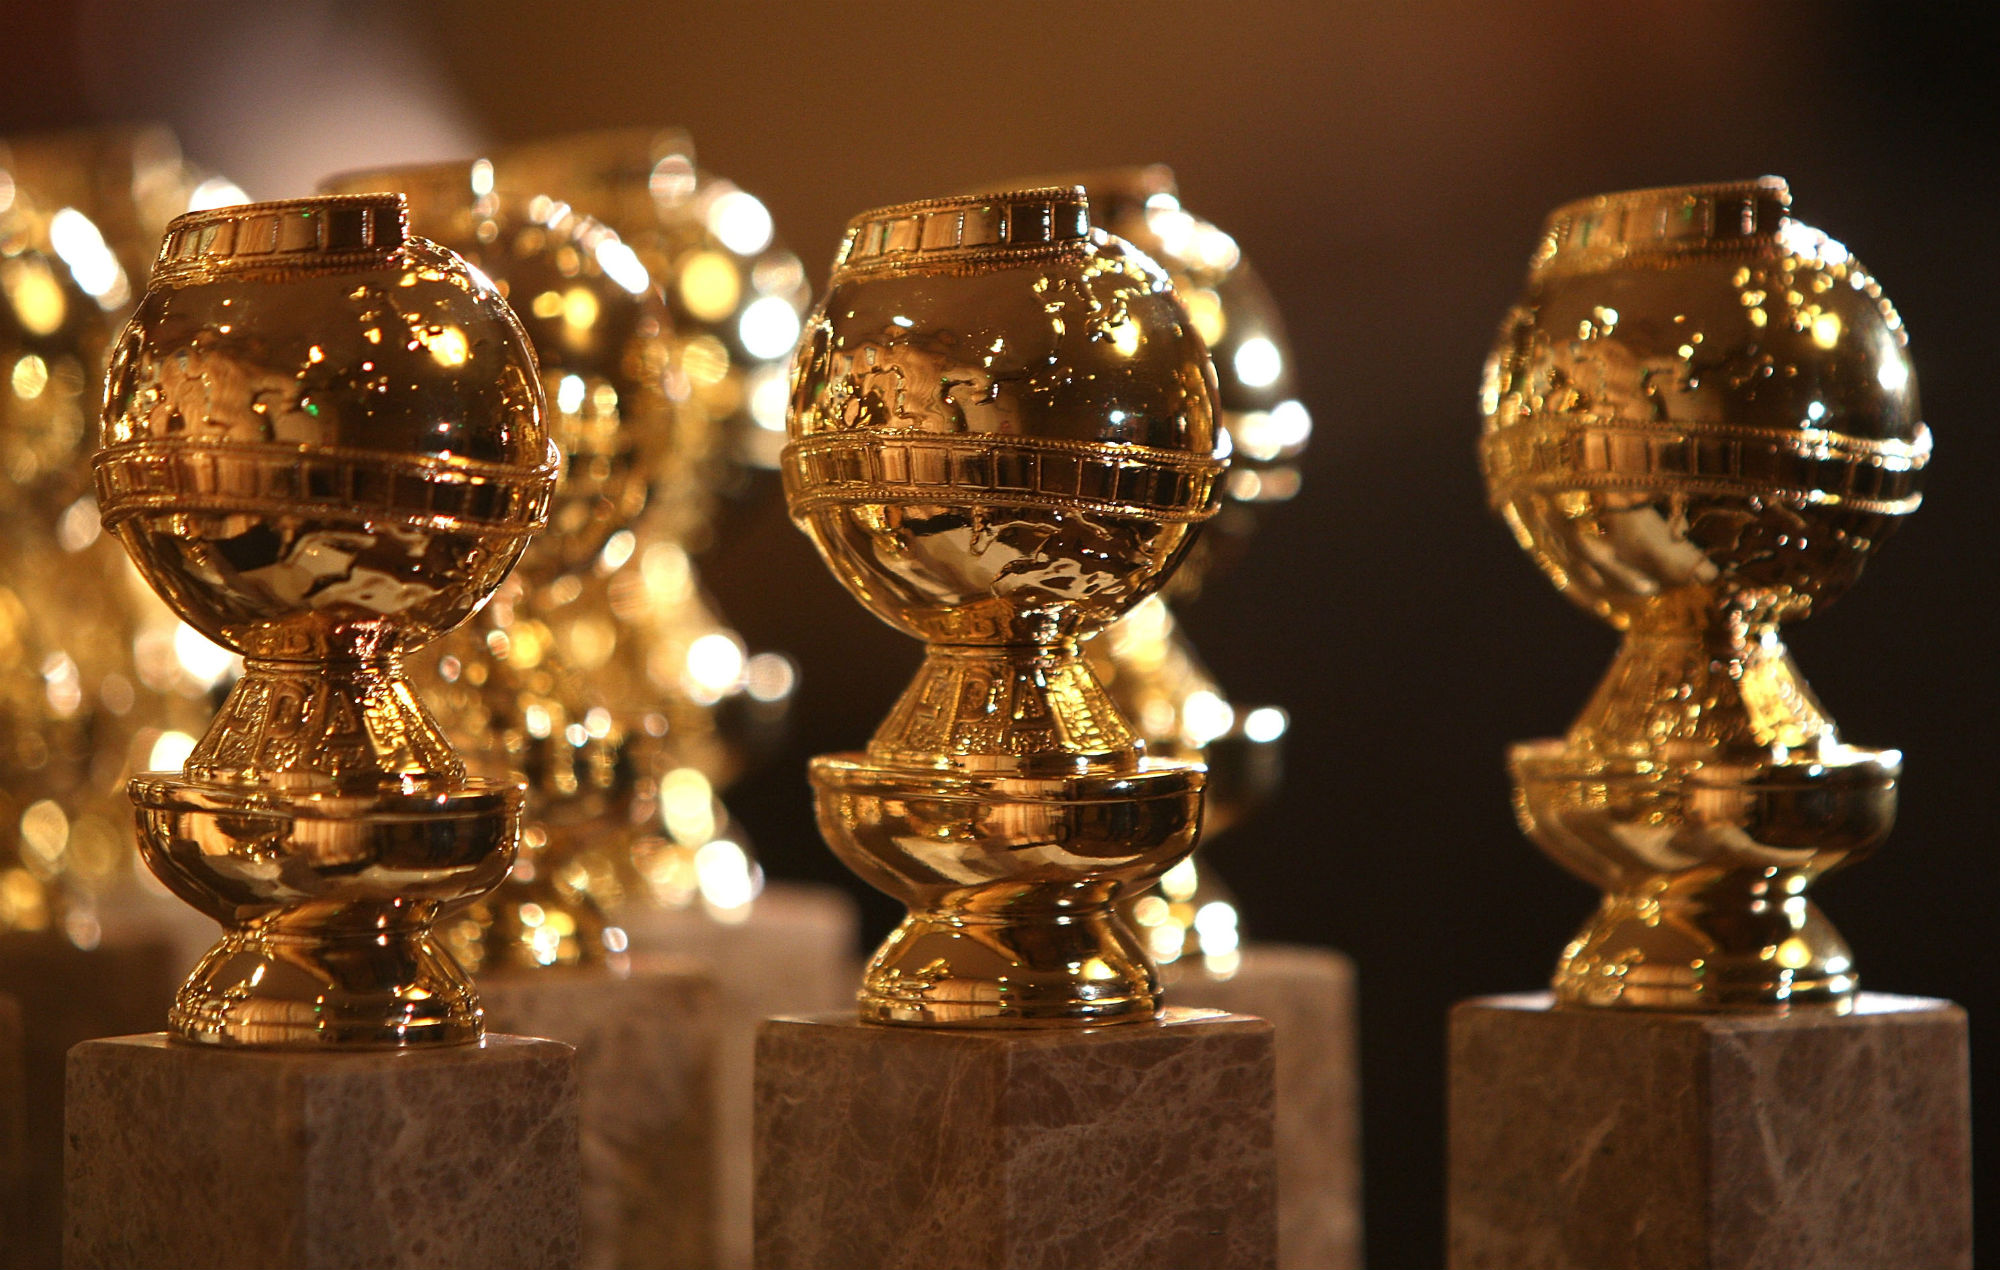 Golden Globes 2020: see the full list of film and TV nominees